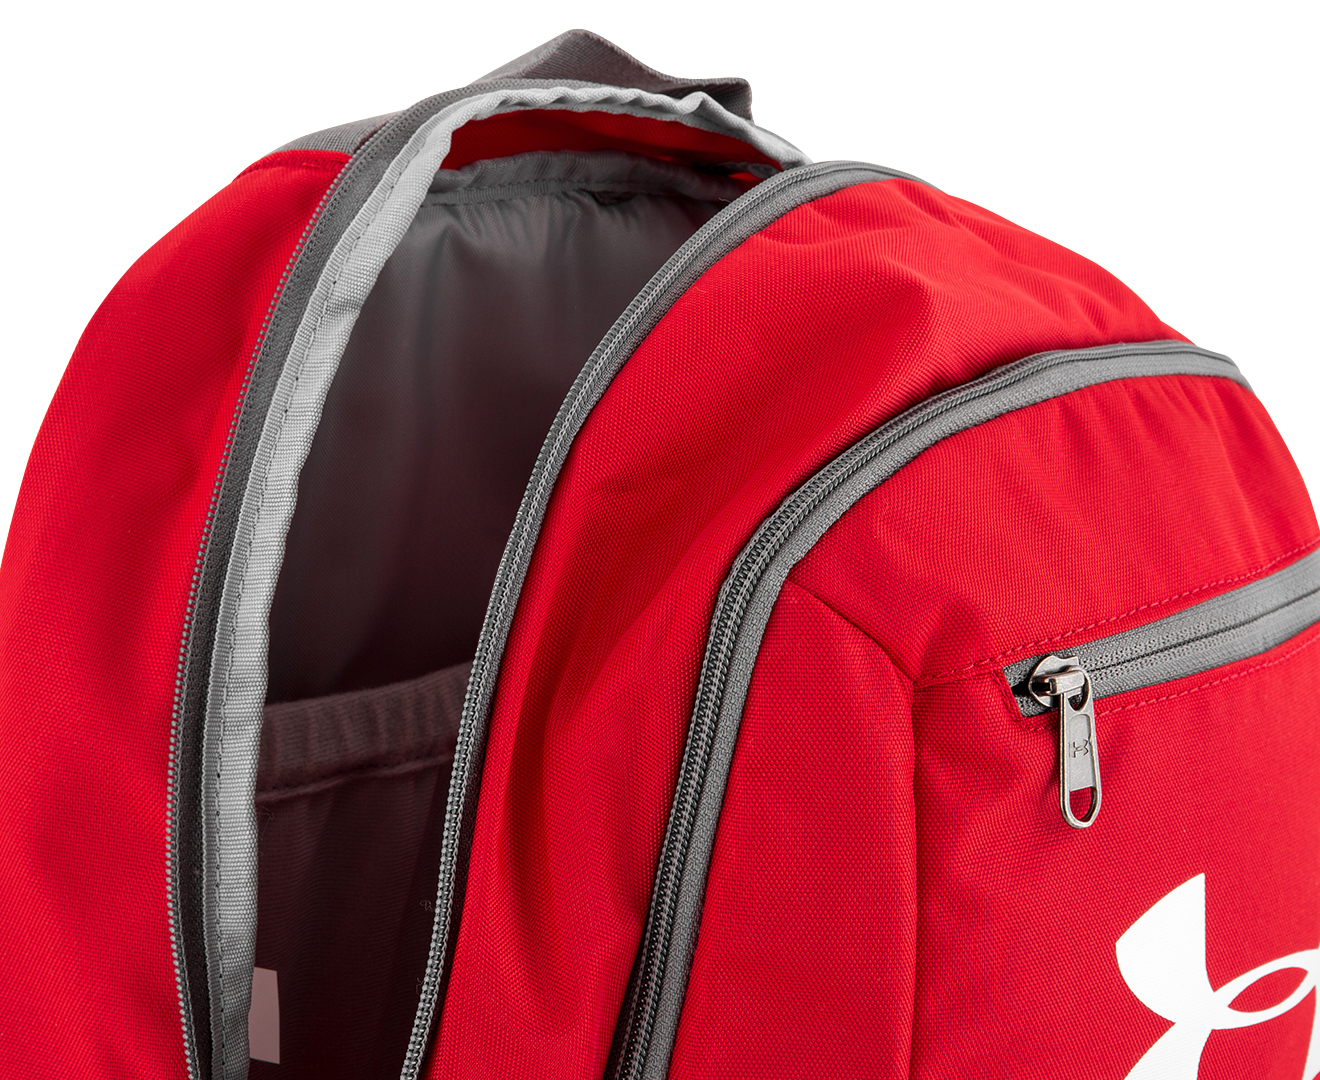 Under Armour 24L Hustle Backpack - Red  fbe4a4fb75661